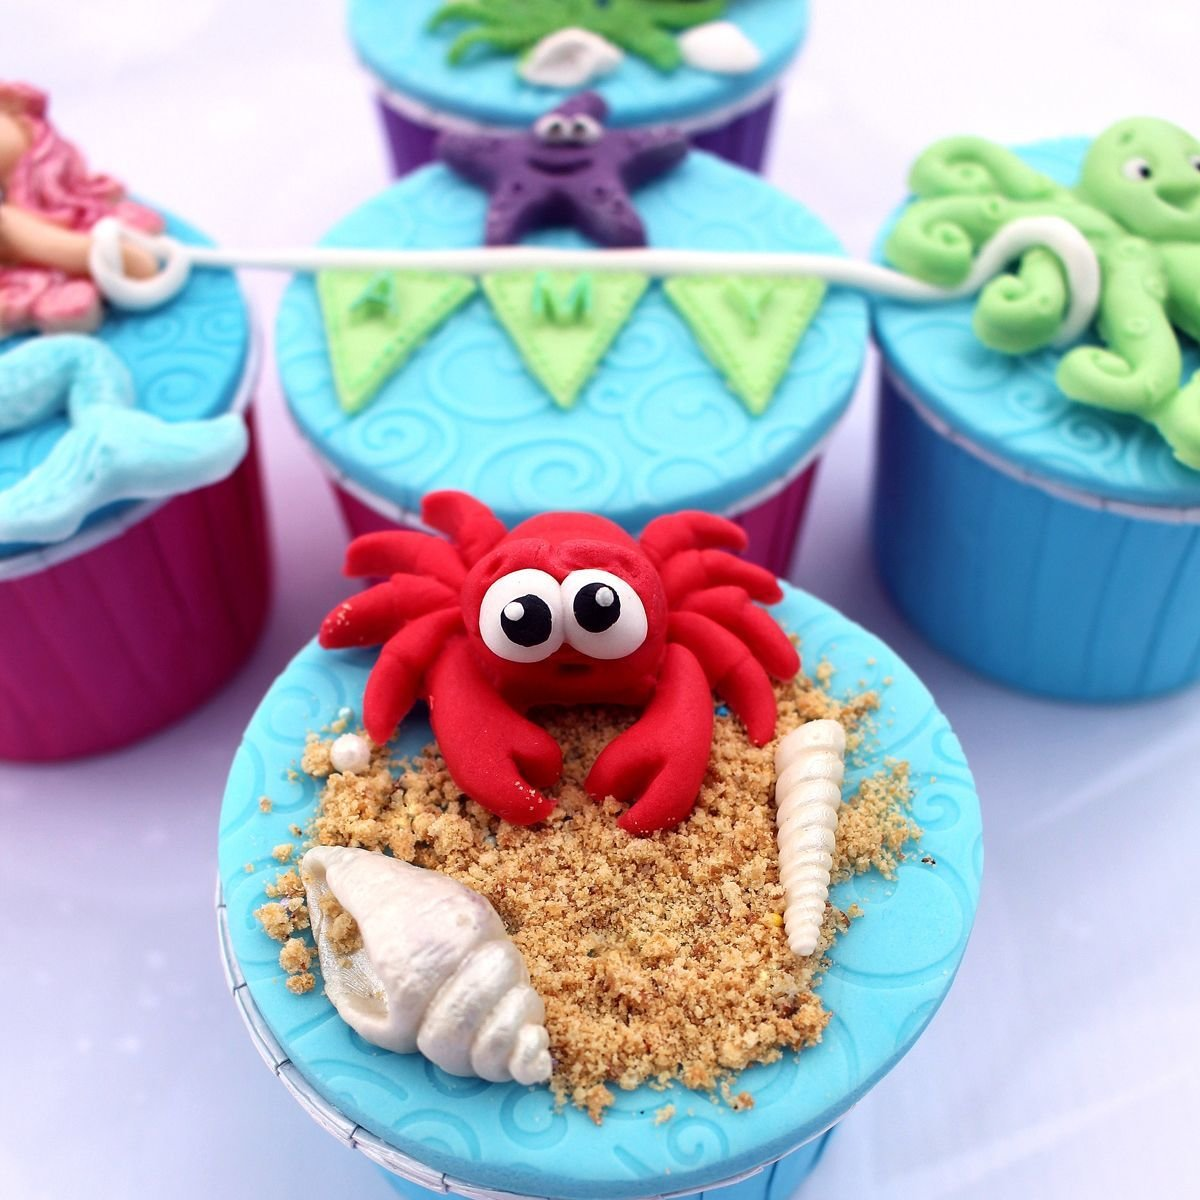 Katy Sue Silicone Mould -Sugar Buttons -CRAB & FISH -Καλούπι Καβούρι & Ψάρι